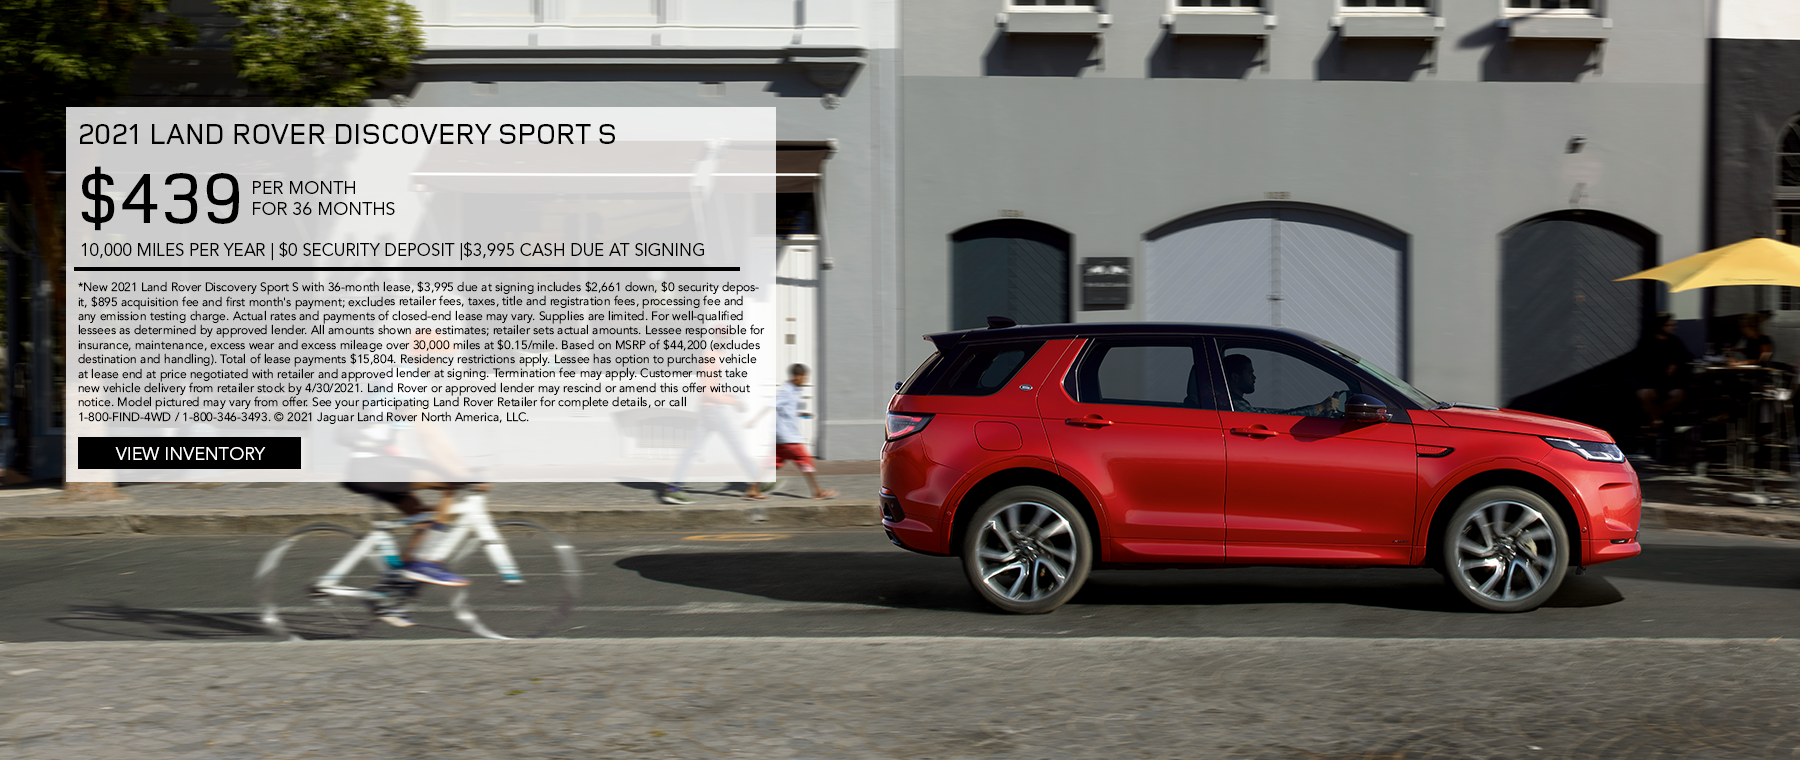 April Discovery Sport